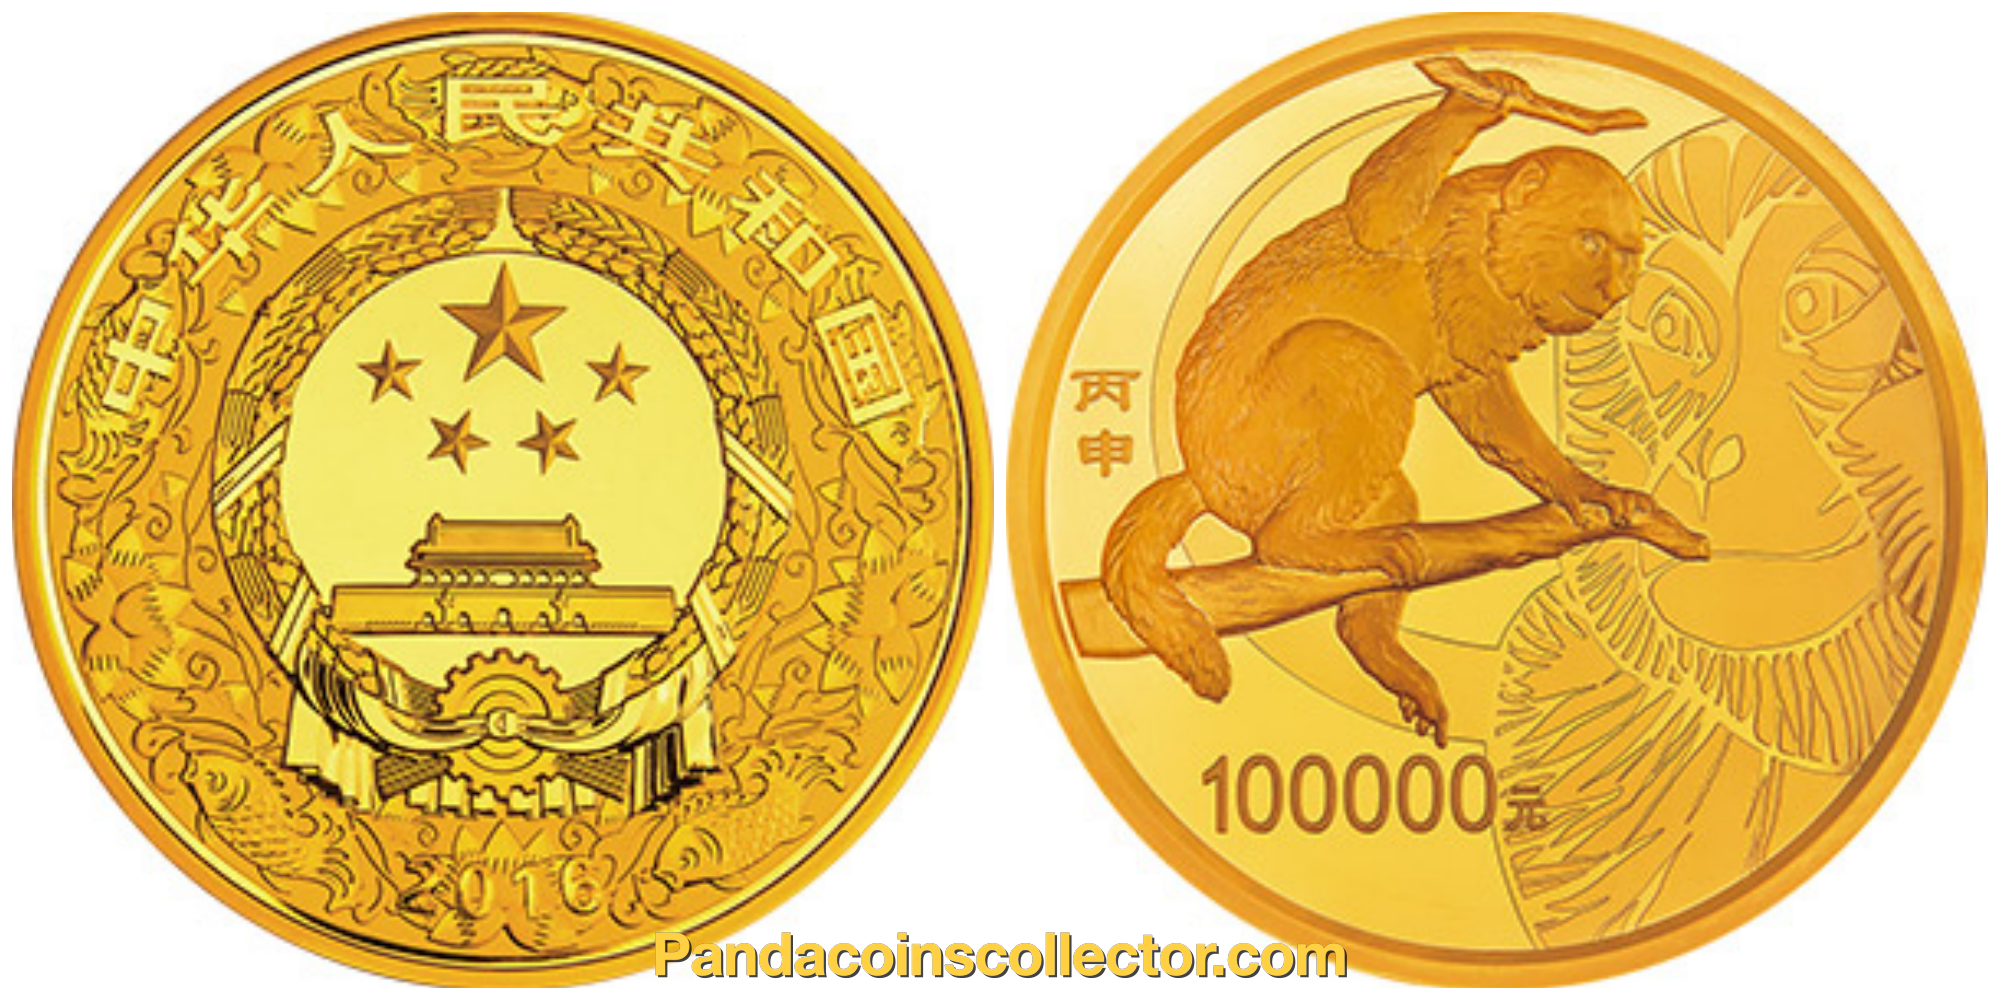 Chinese Lunar Series Ii Year Of The Monkey Proof Gold